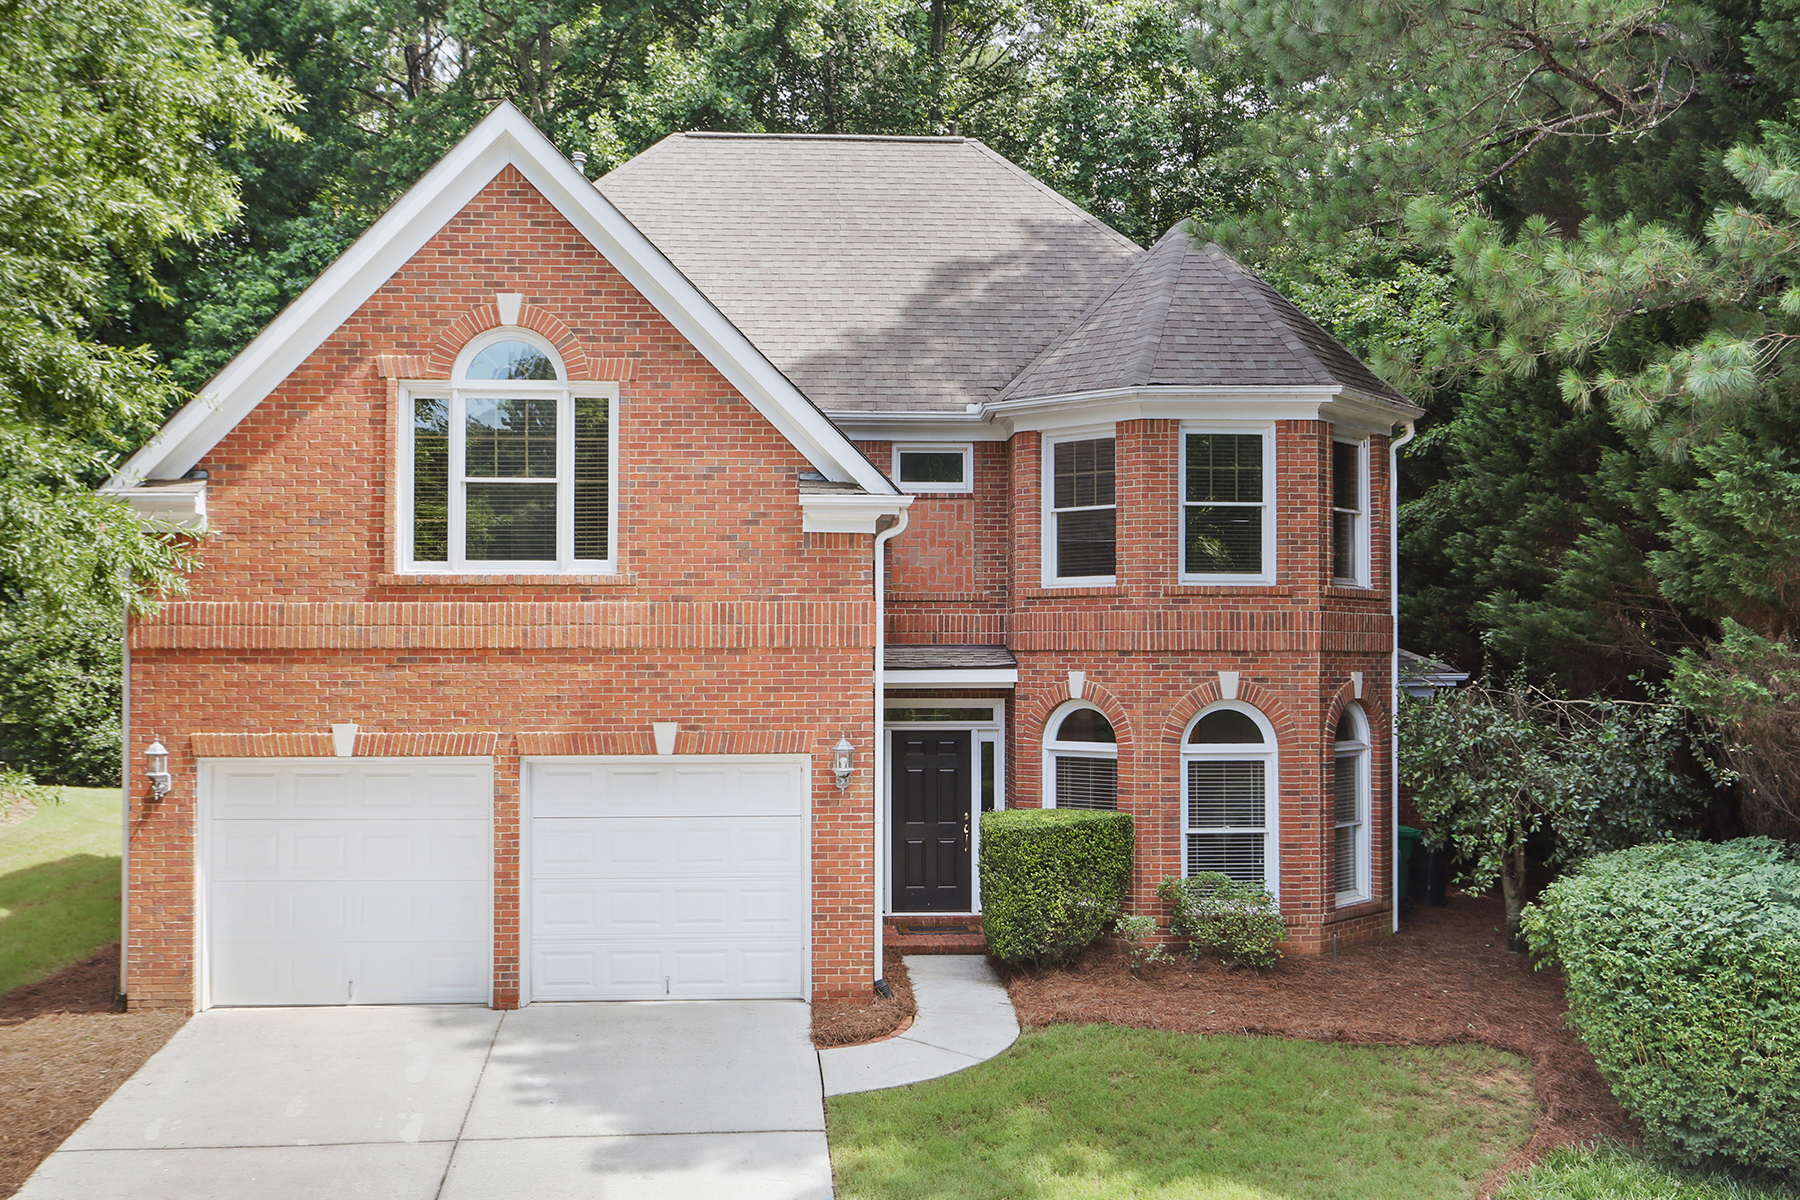 Single Family Home for Sale at Lovely Four Sided Brick Home With Open Floor Plan And Master On Main 1950 Northbrooke Lane Dunwoody, Georgia 30338 United States